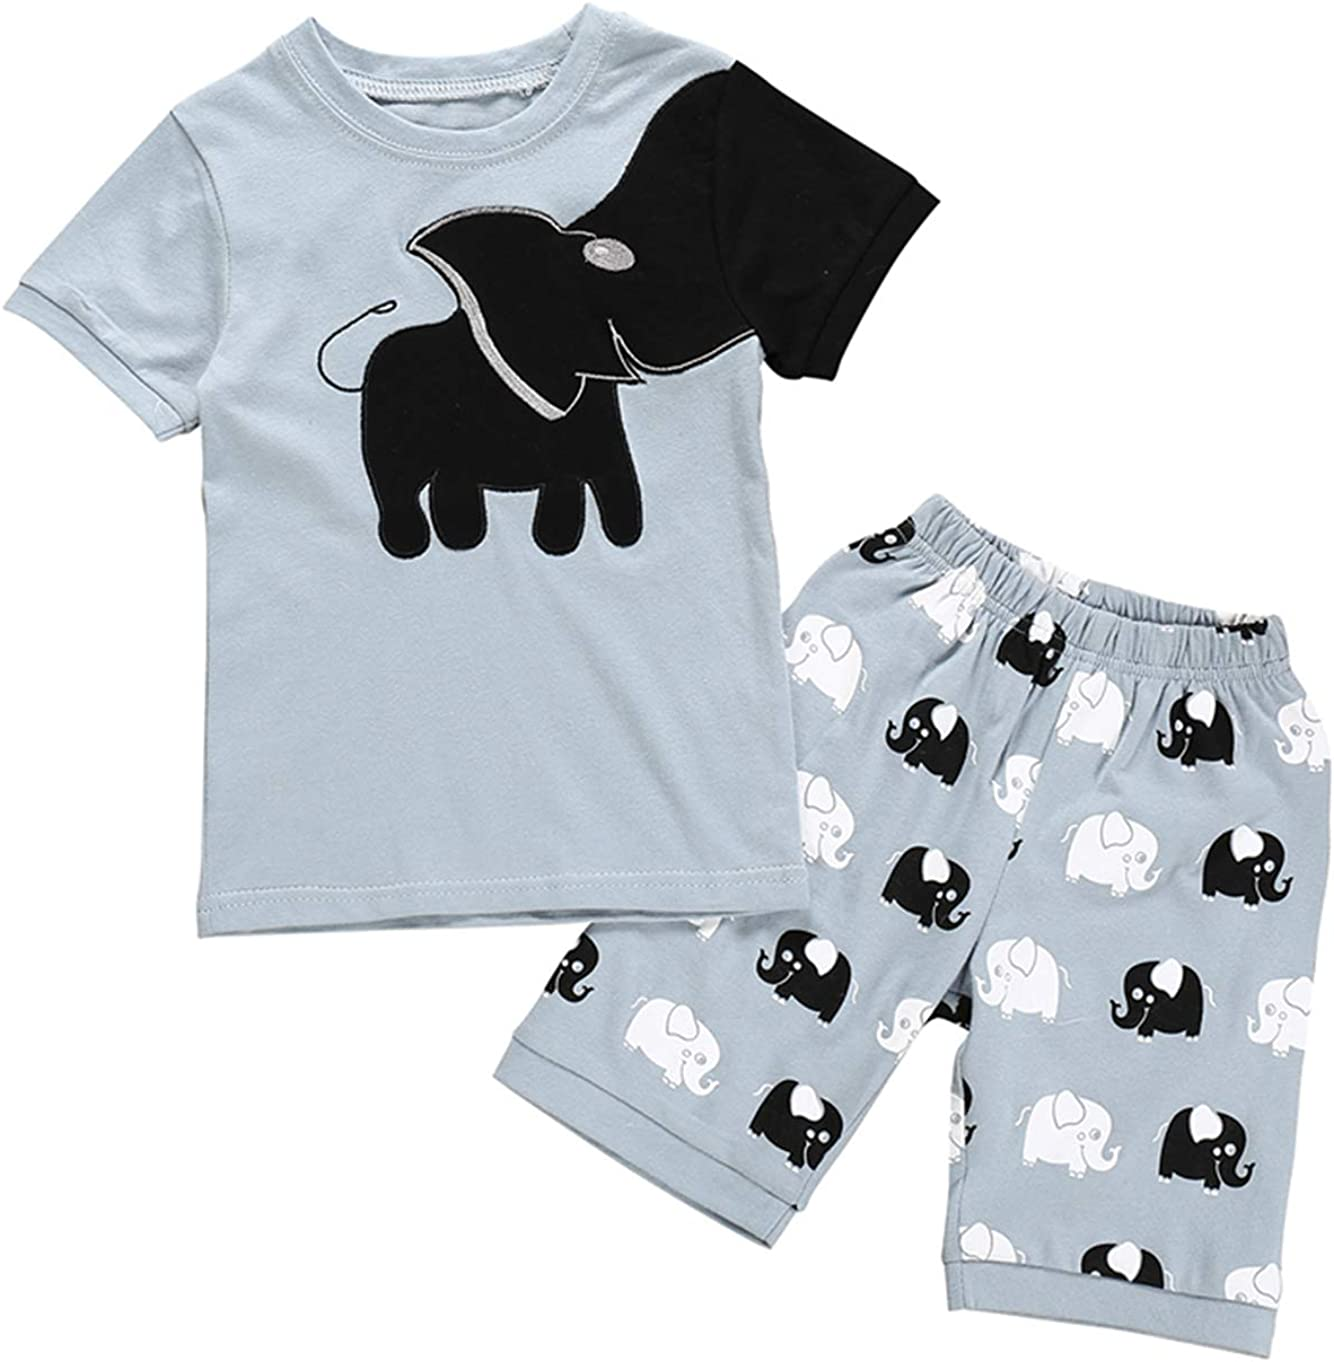 Casual Striped Pants Suit Fashion Cartoon Print Cloth Summer Baby Boy T Shirts